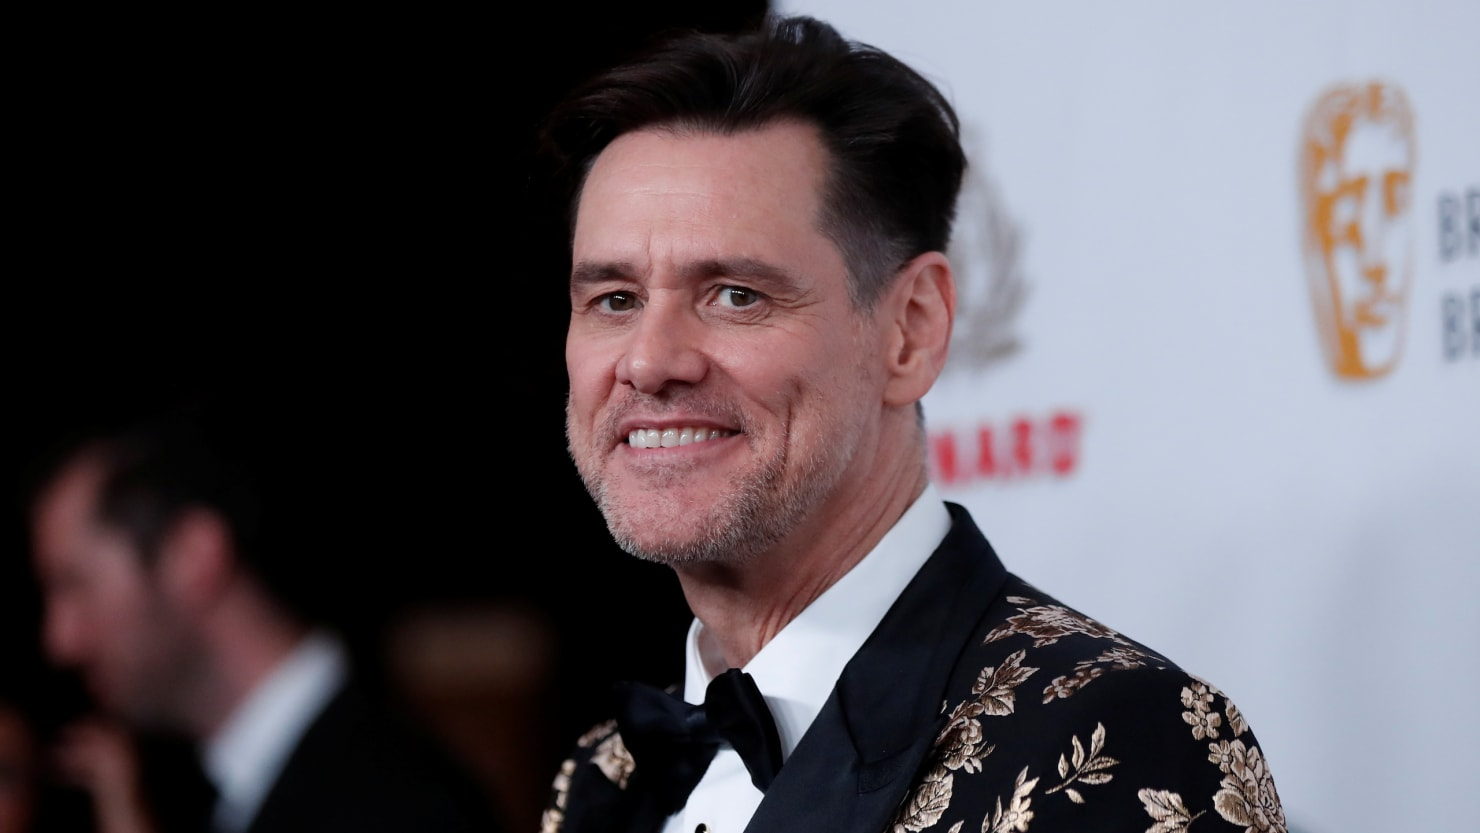 Jim Carrey Fires Back at Ted Cruz for 'Lecturing' Him on 'Civility'